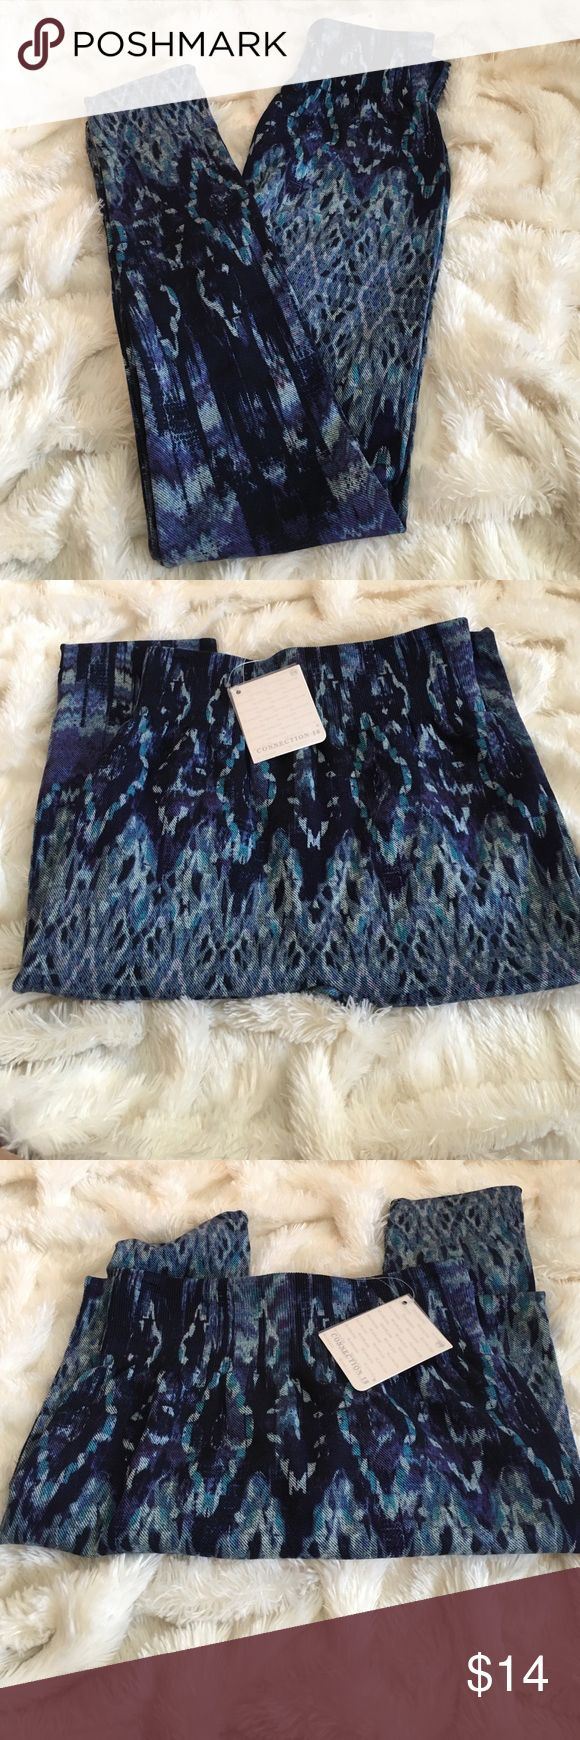 💞winter /fall leggings size small💞💞💞 💞💞💞size small /med  winter fall legging so comfortable and attractive on great 👍 fitting 😊 blue tones connection 18 Pants Leggings